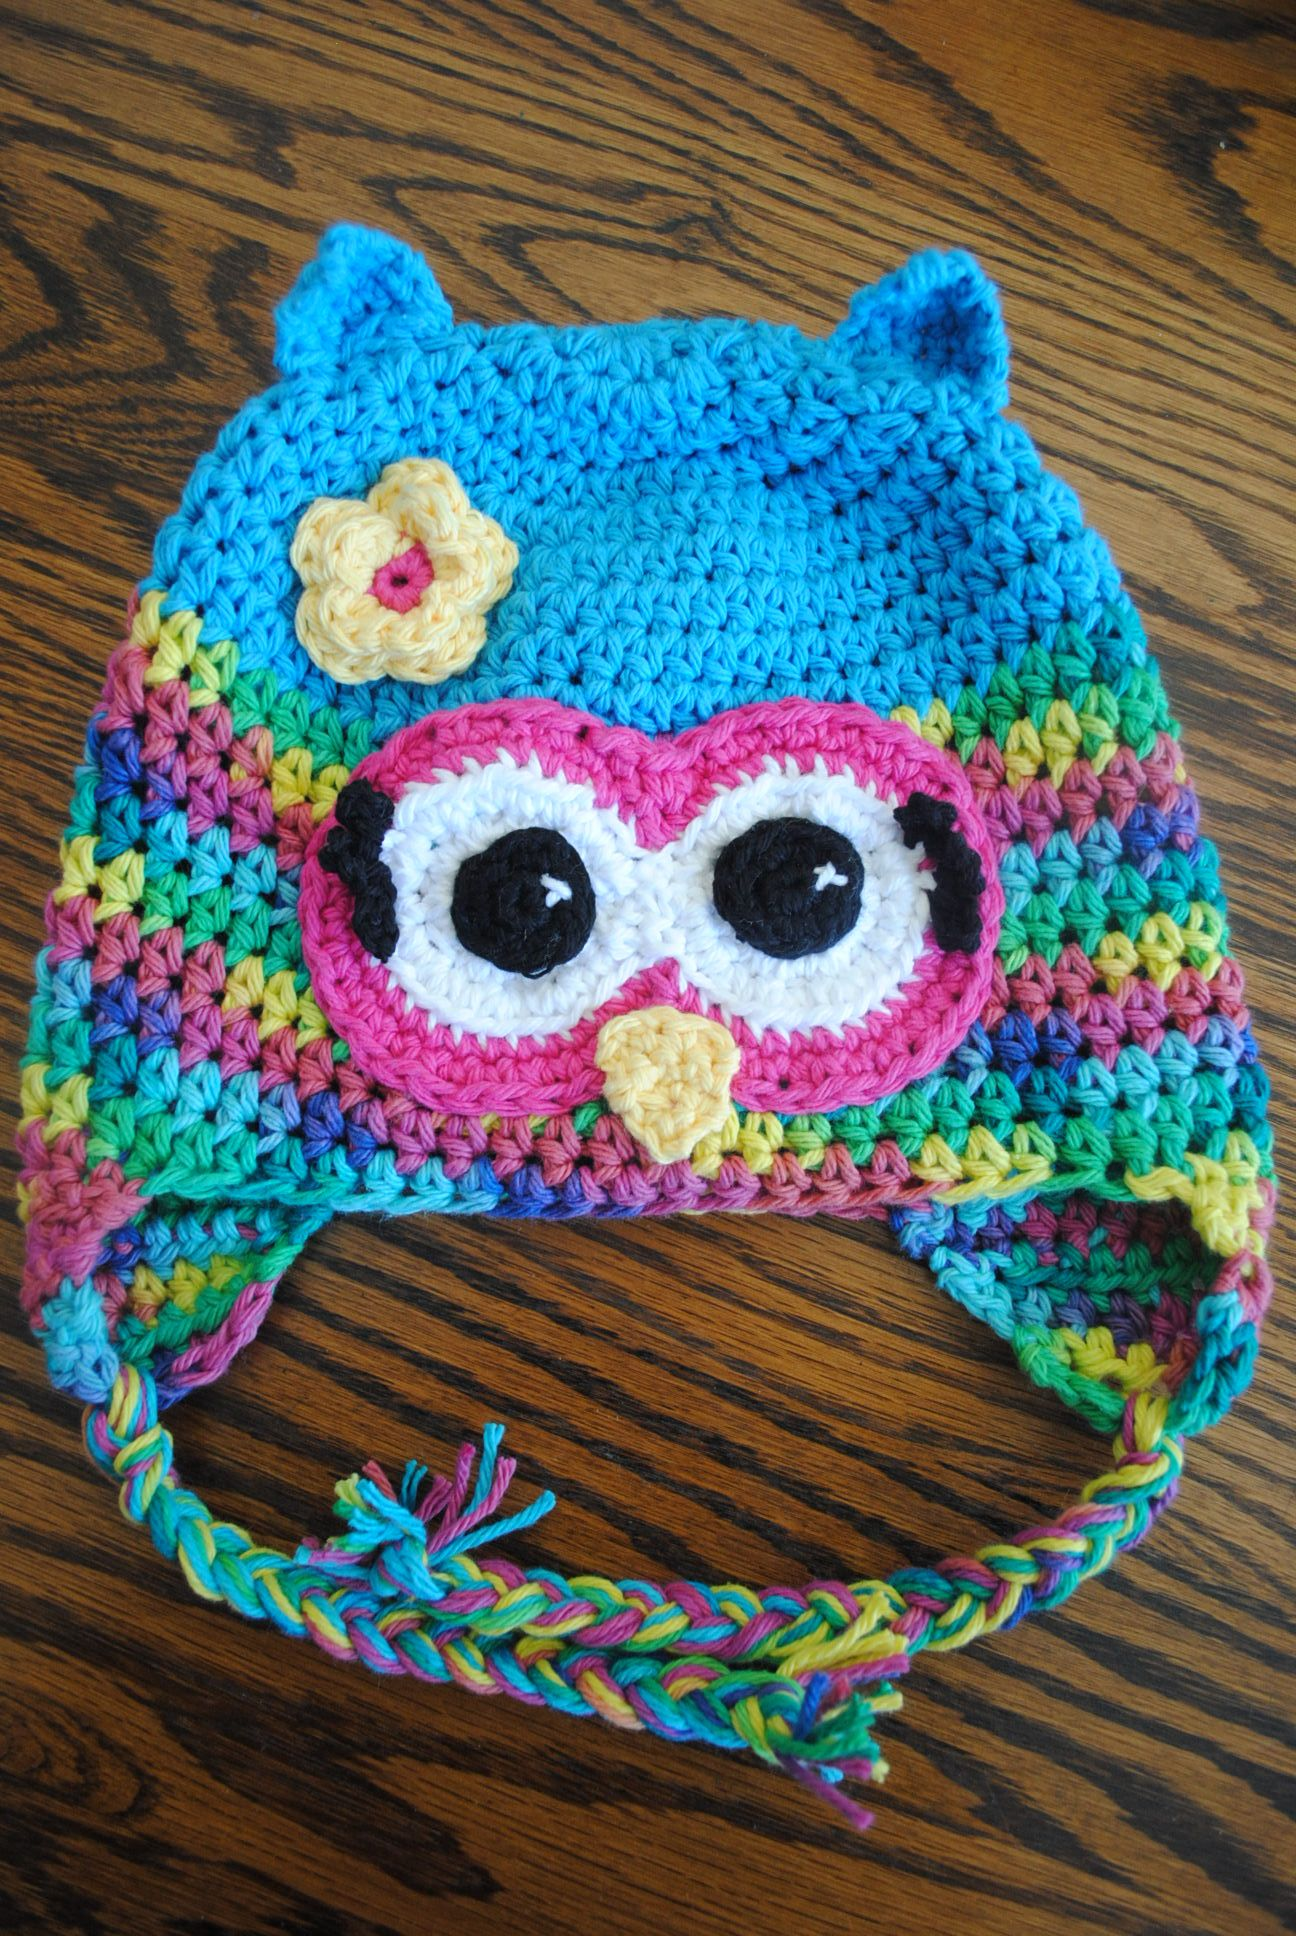 58844c30401 ... ravelry itu0027s a hoot an owl hat pattern by carlinda 4cb4b 5852b   cheap free crochet owl hat pattern oh boy oh boy owl can also be made for